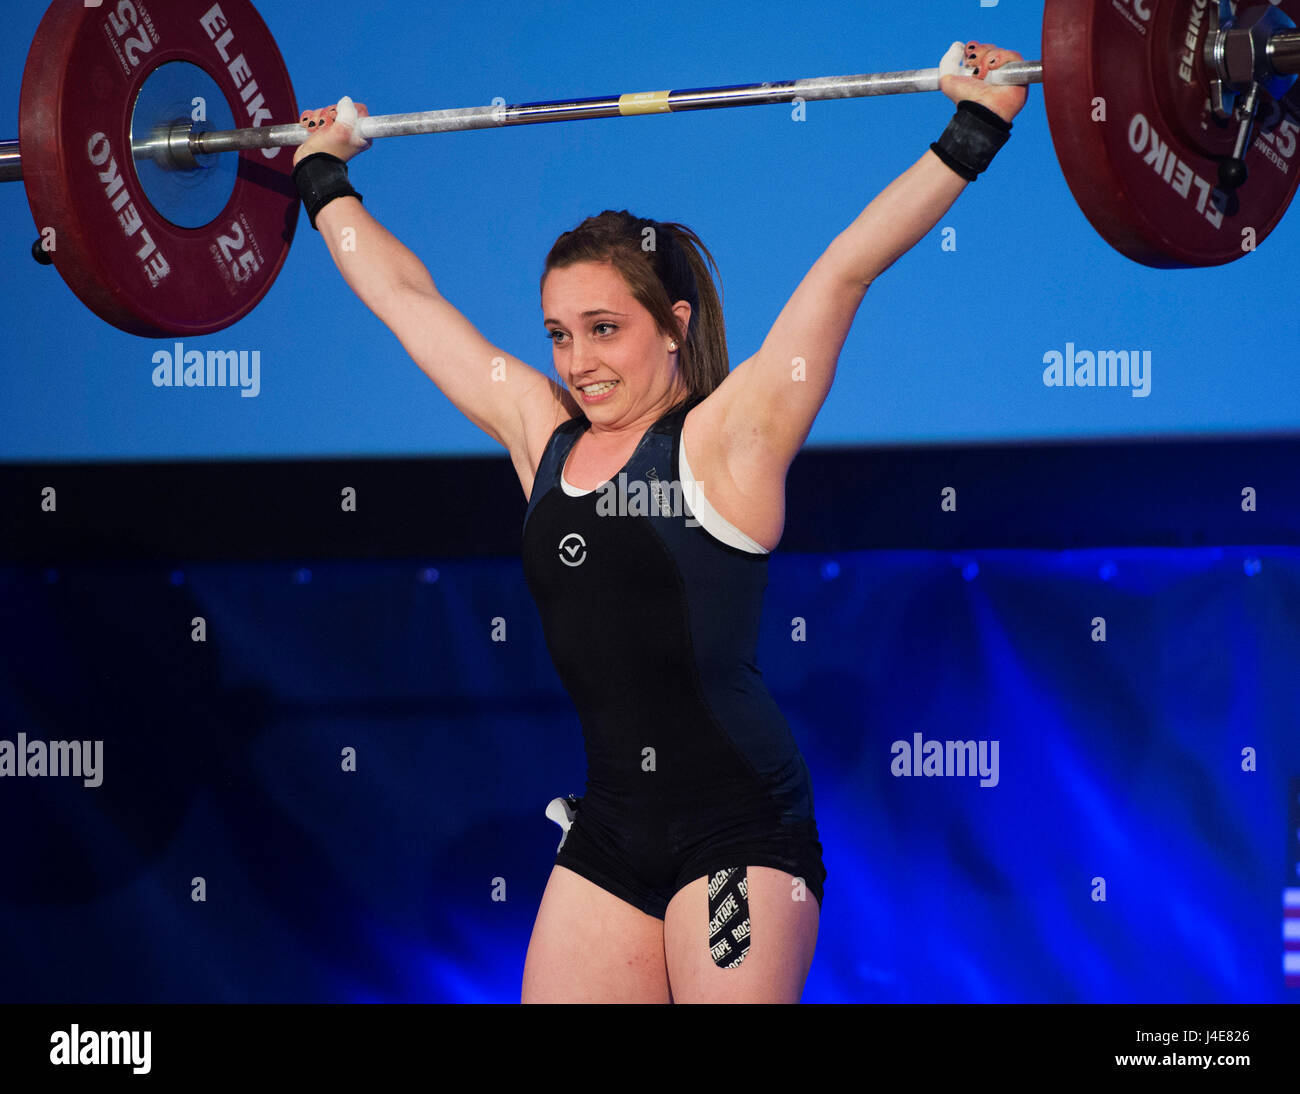 May 12, 2017:  Megan Seegert competes in the Womens 48kg. class at the USA Weightlifting National Championships - Stock Image